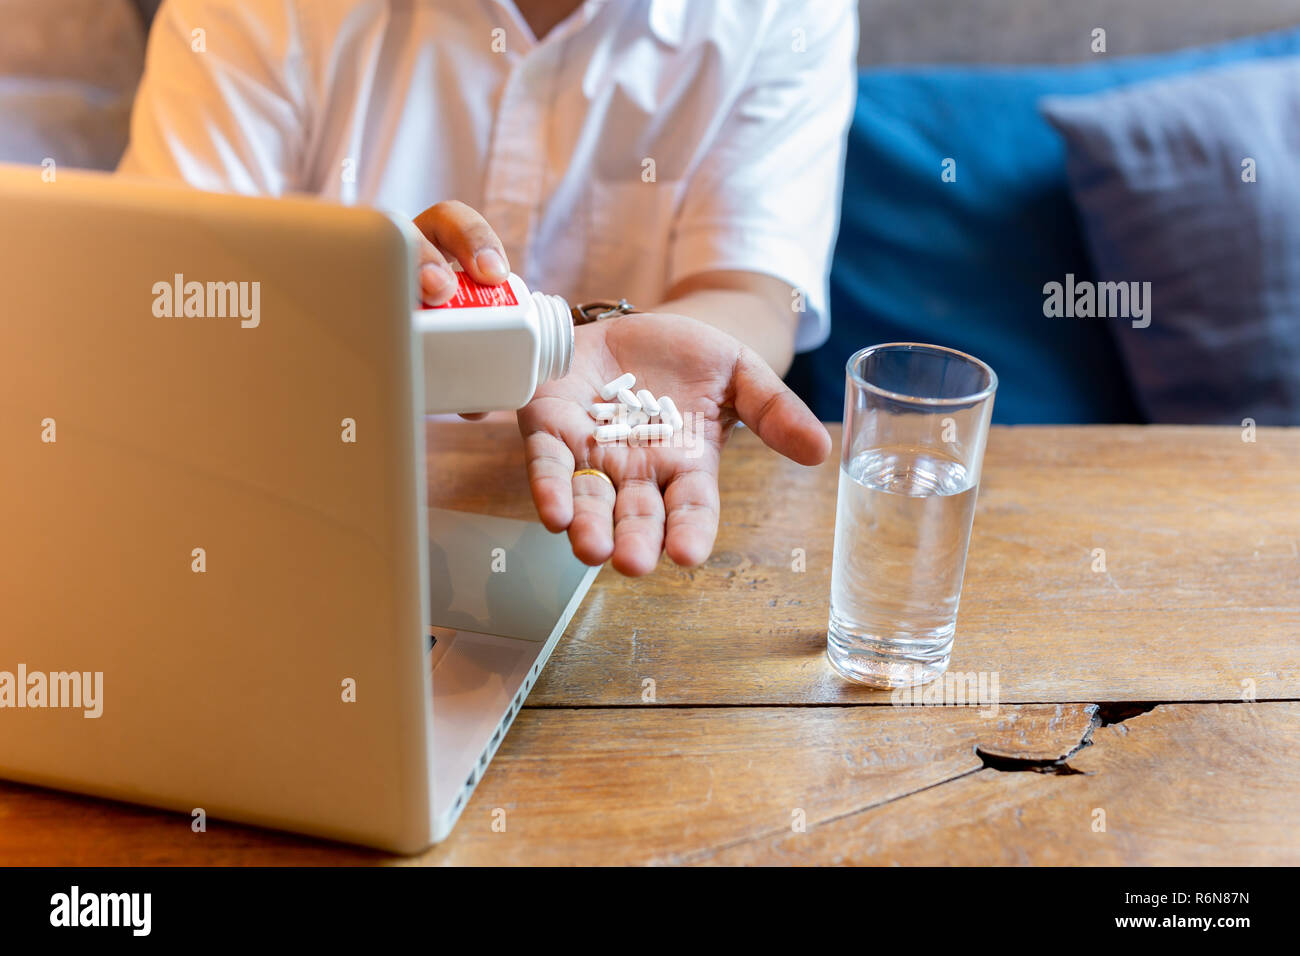 Man taking pill with glass of water and laptop on wooden table. - Stock Image